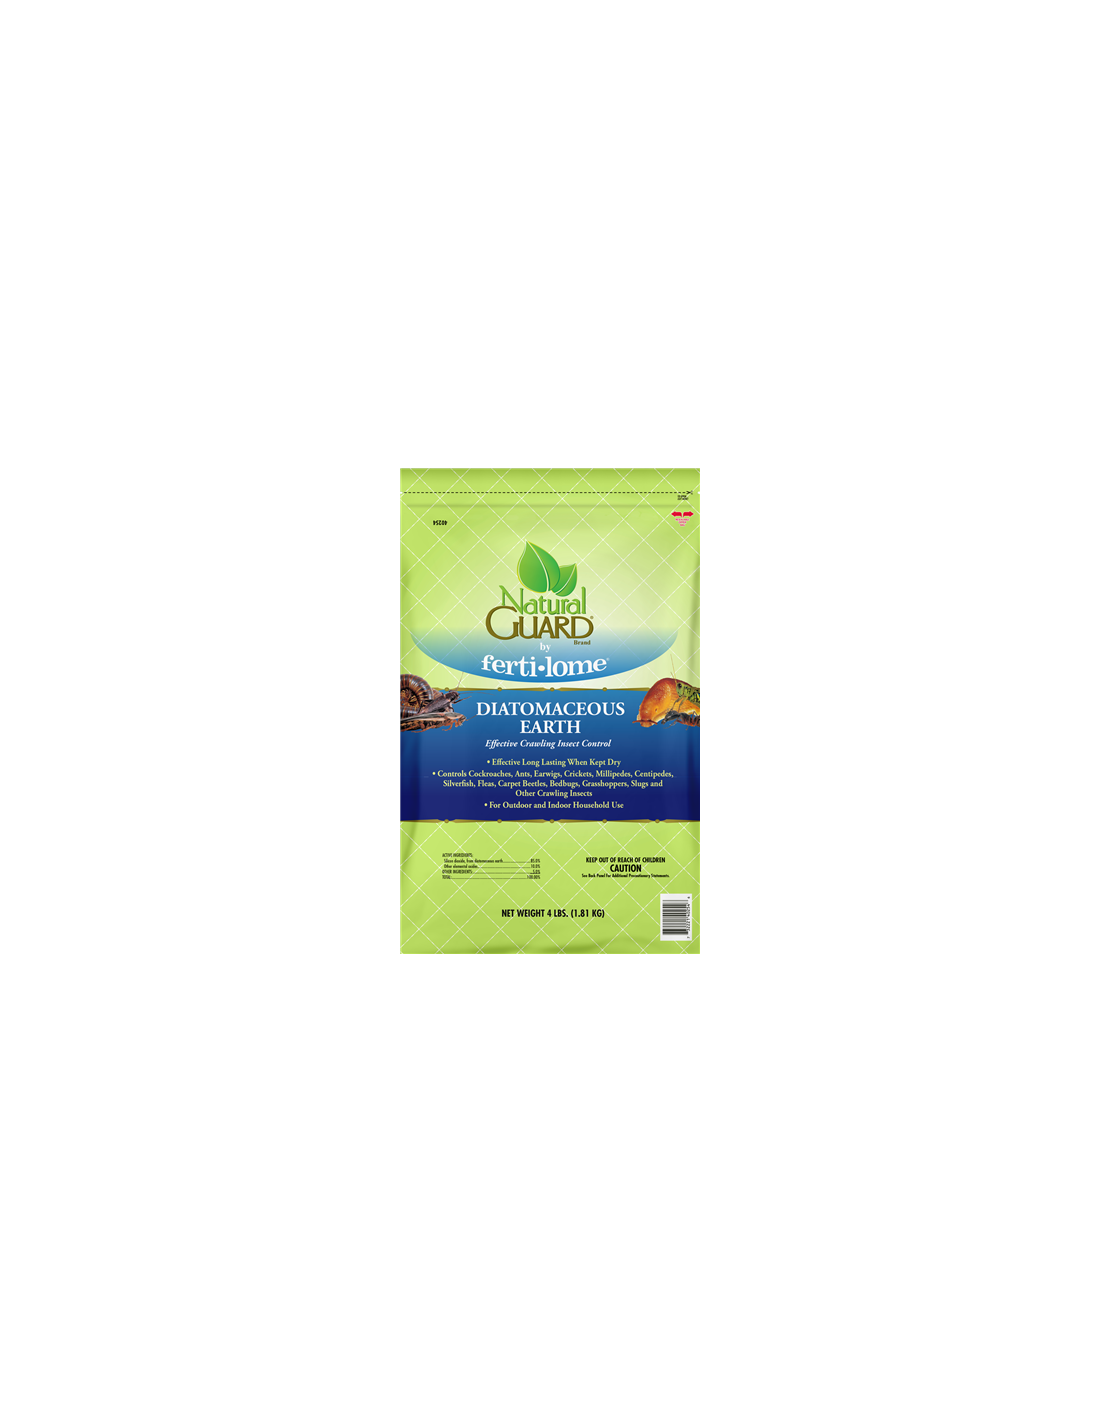 Natural Guard Crawling Insect Control Questions & Answers